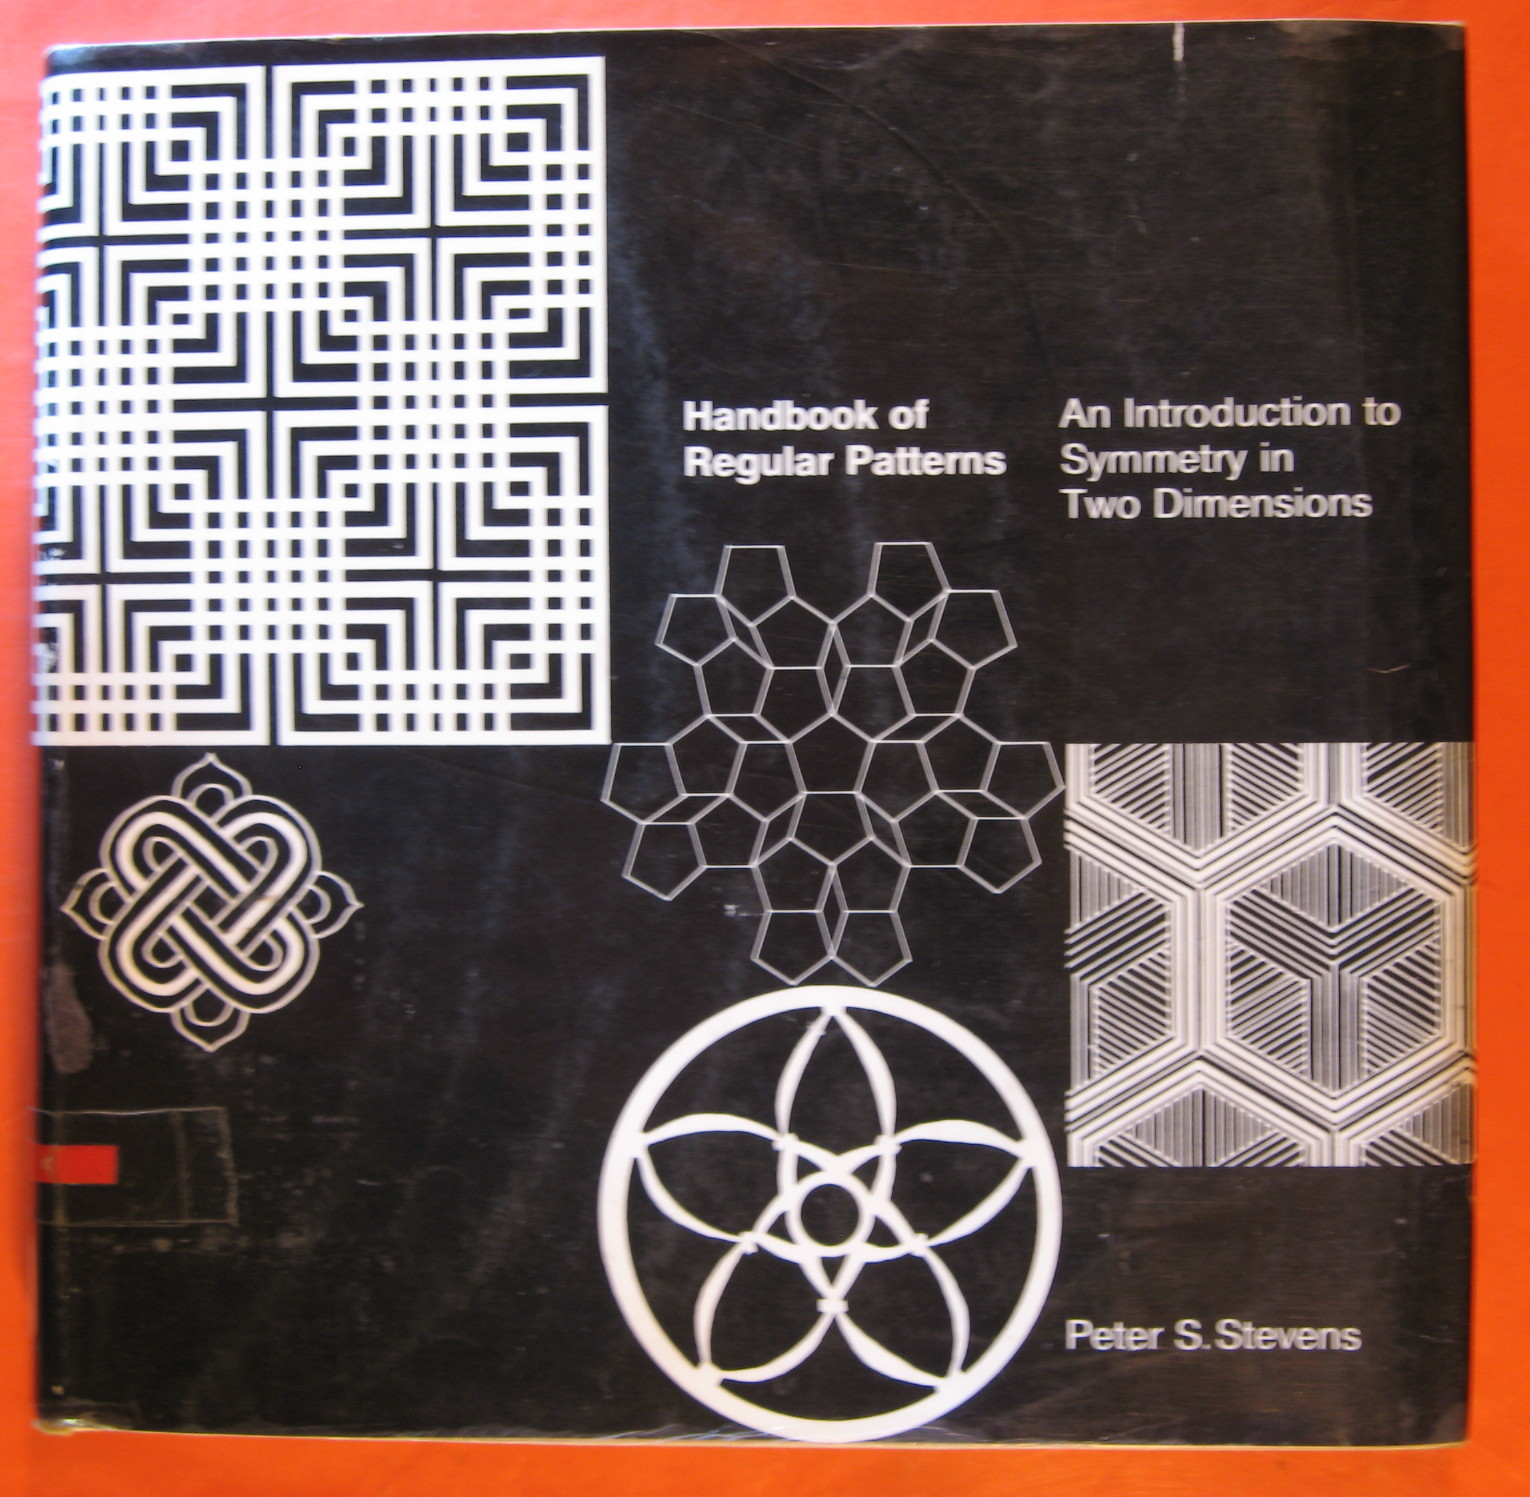 Handbook of Regular Patterns: An Introduction to Symmetry in Two Dimensions